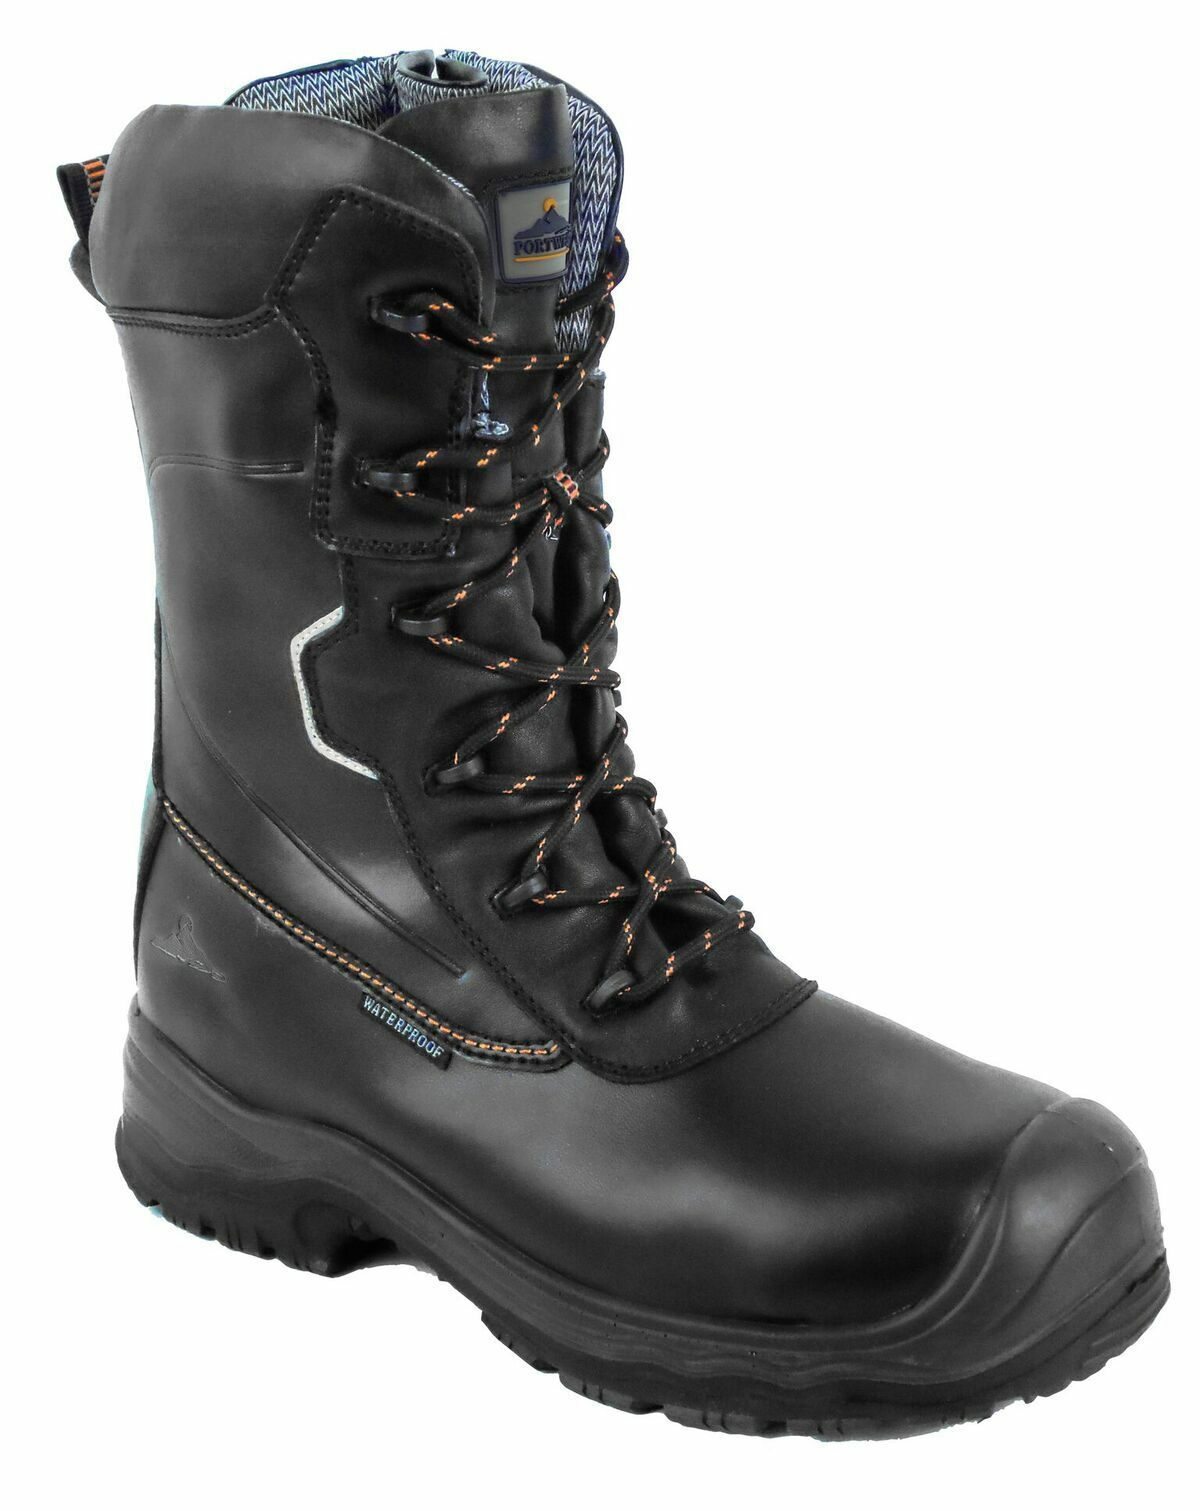 Portwest FD01 Traction 10 Safety Men 25cm Boot Wr Leather 10Inc Waterproof Boots